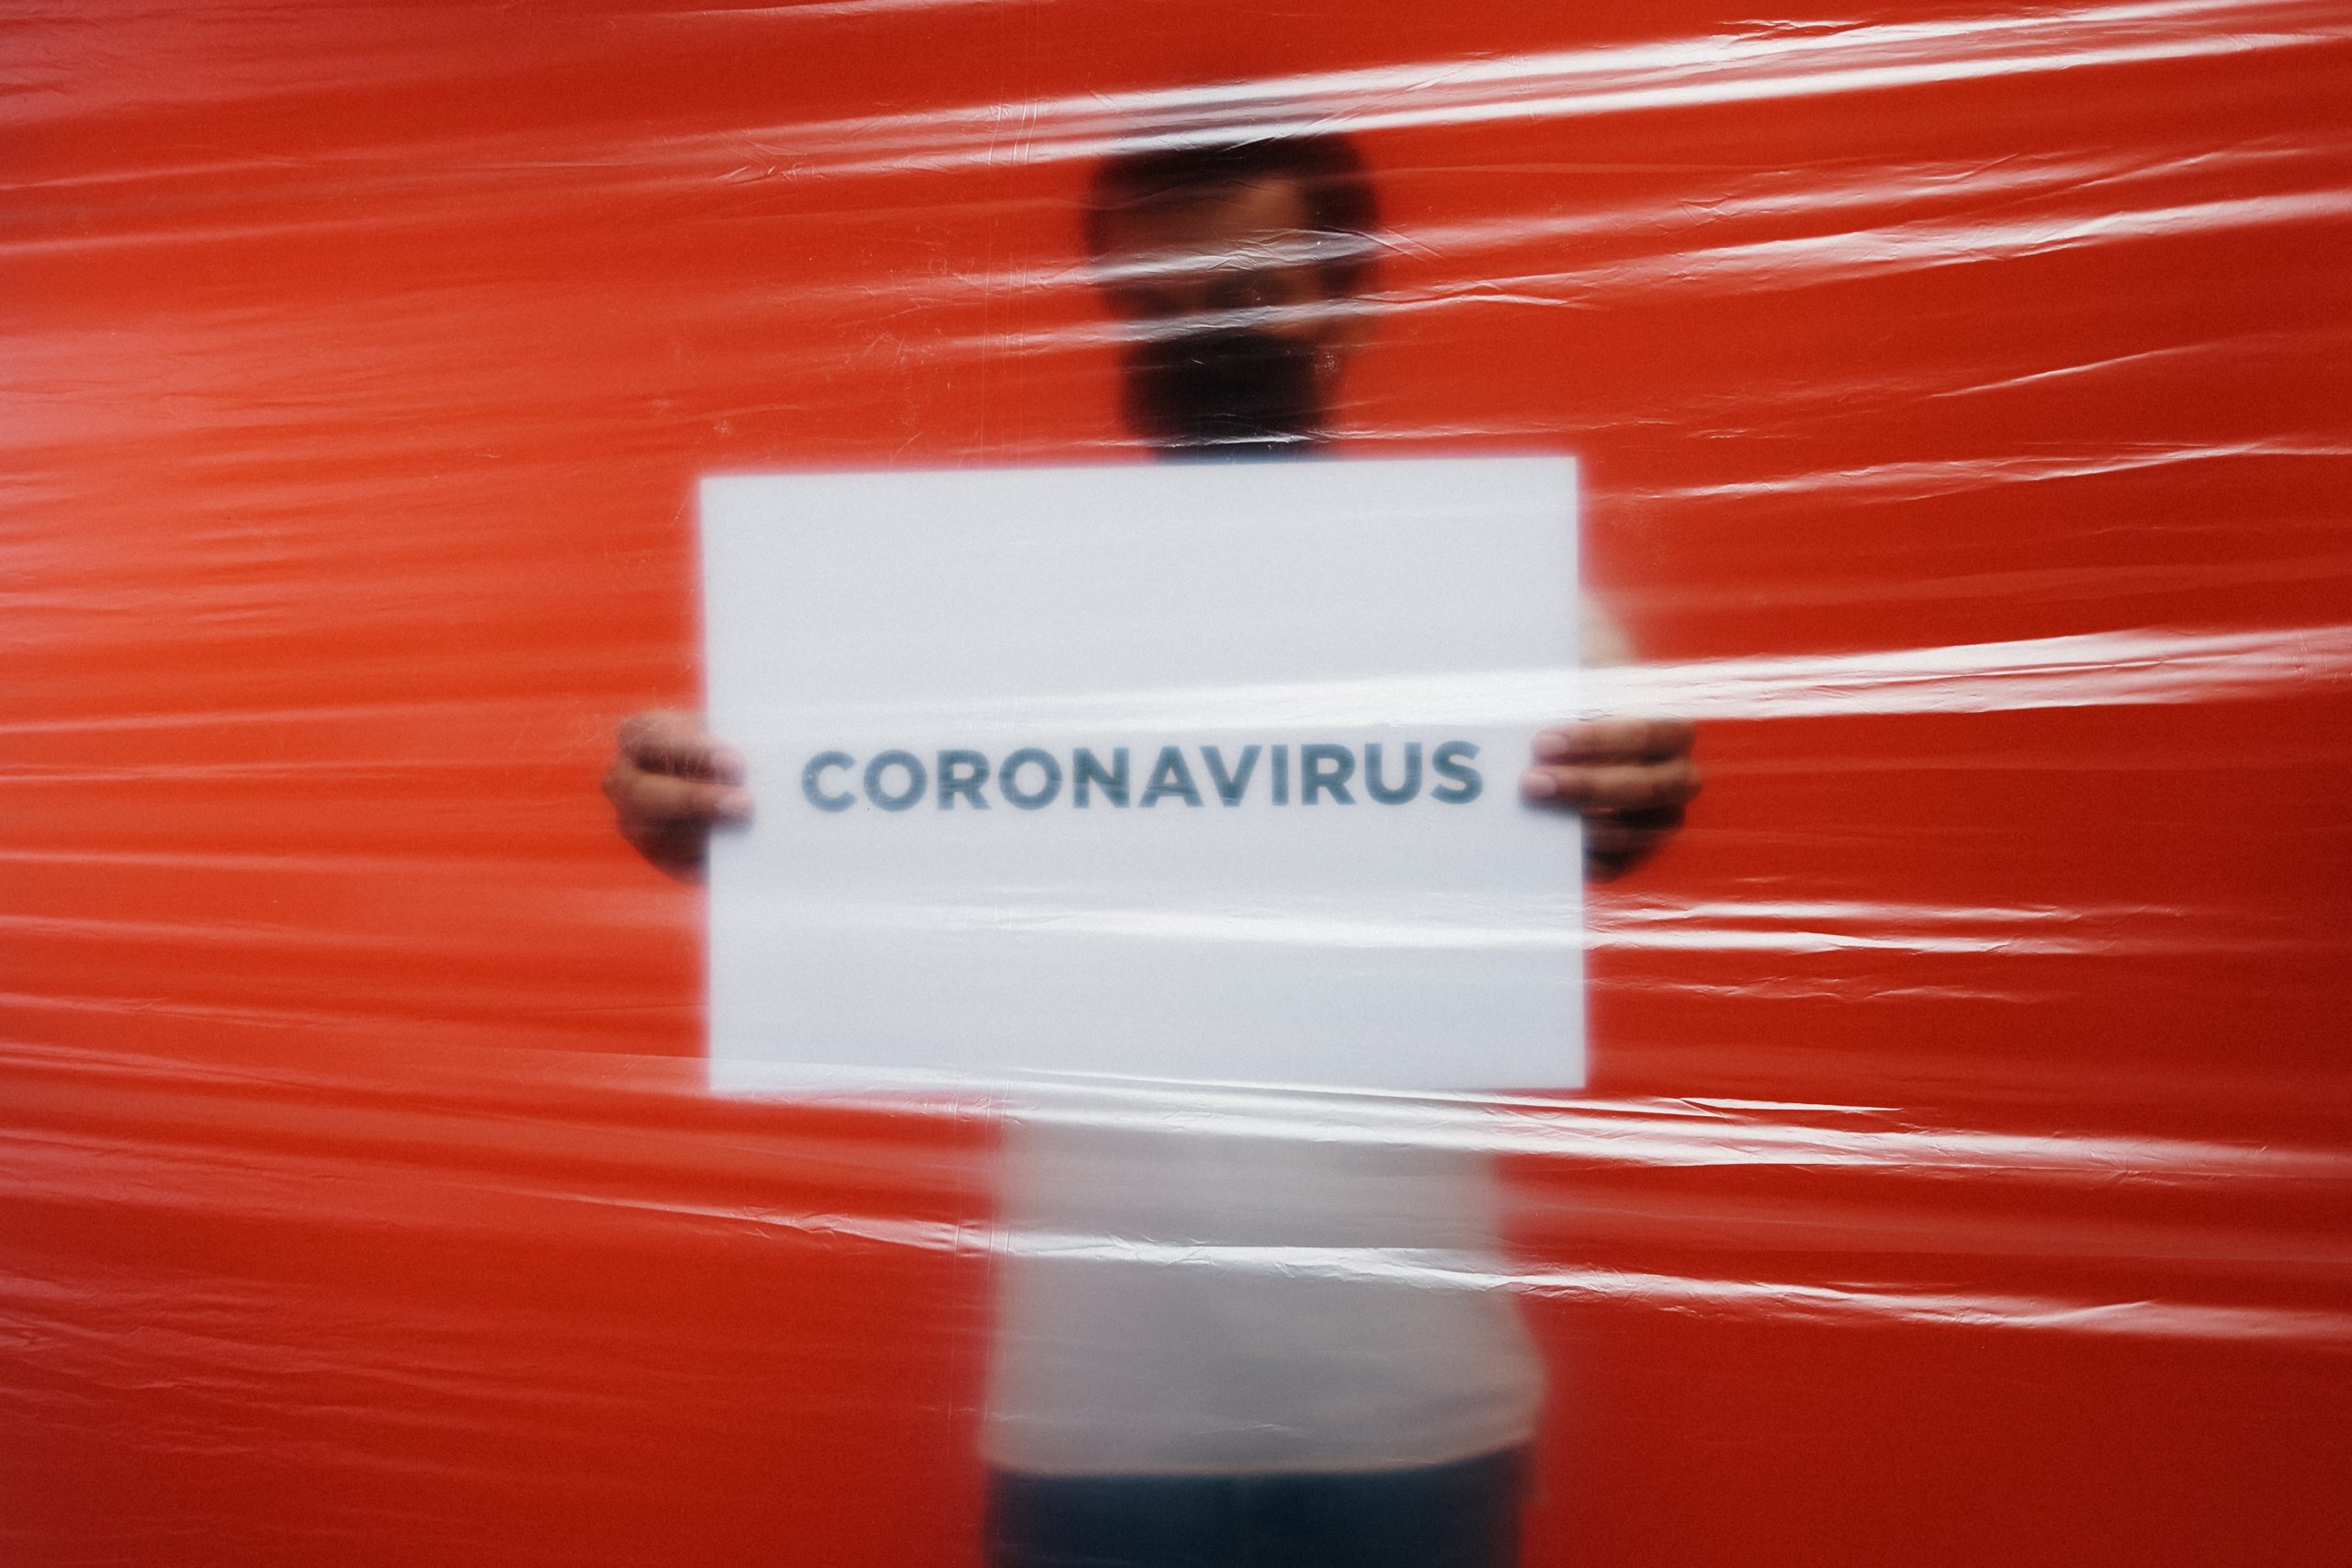 COVID19 man behind a plastic holding a poster of coronavirus 3952185 scaled